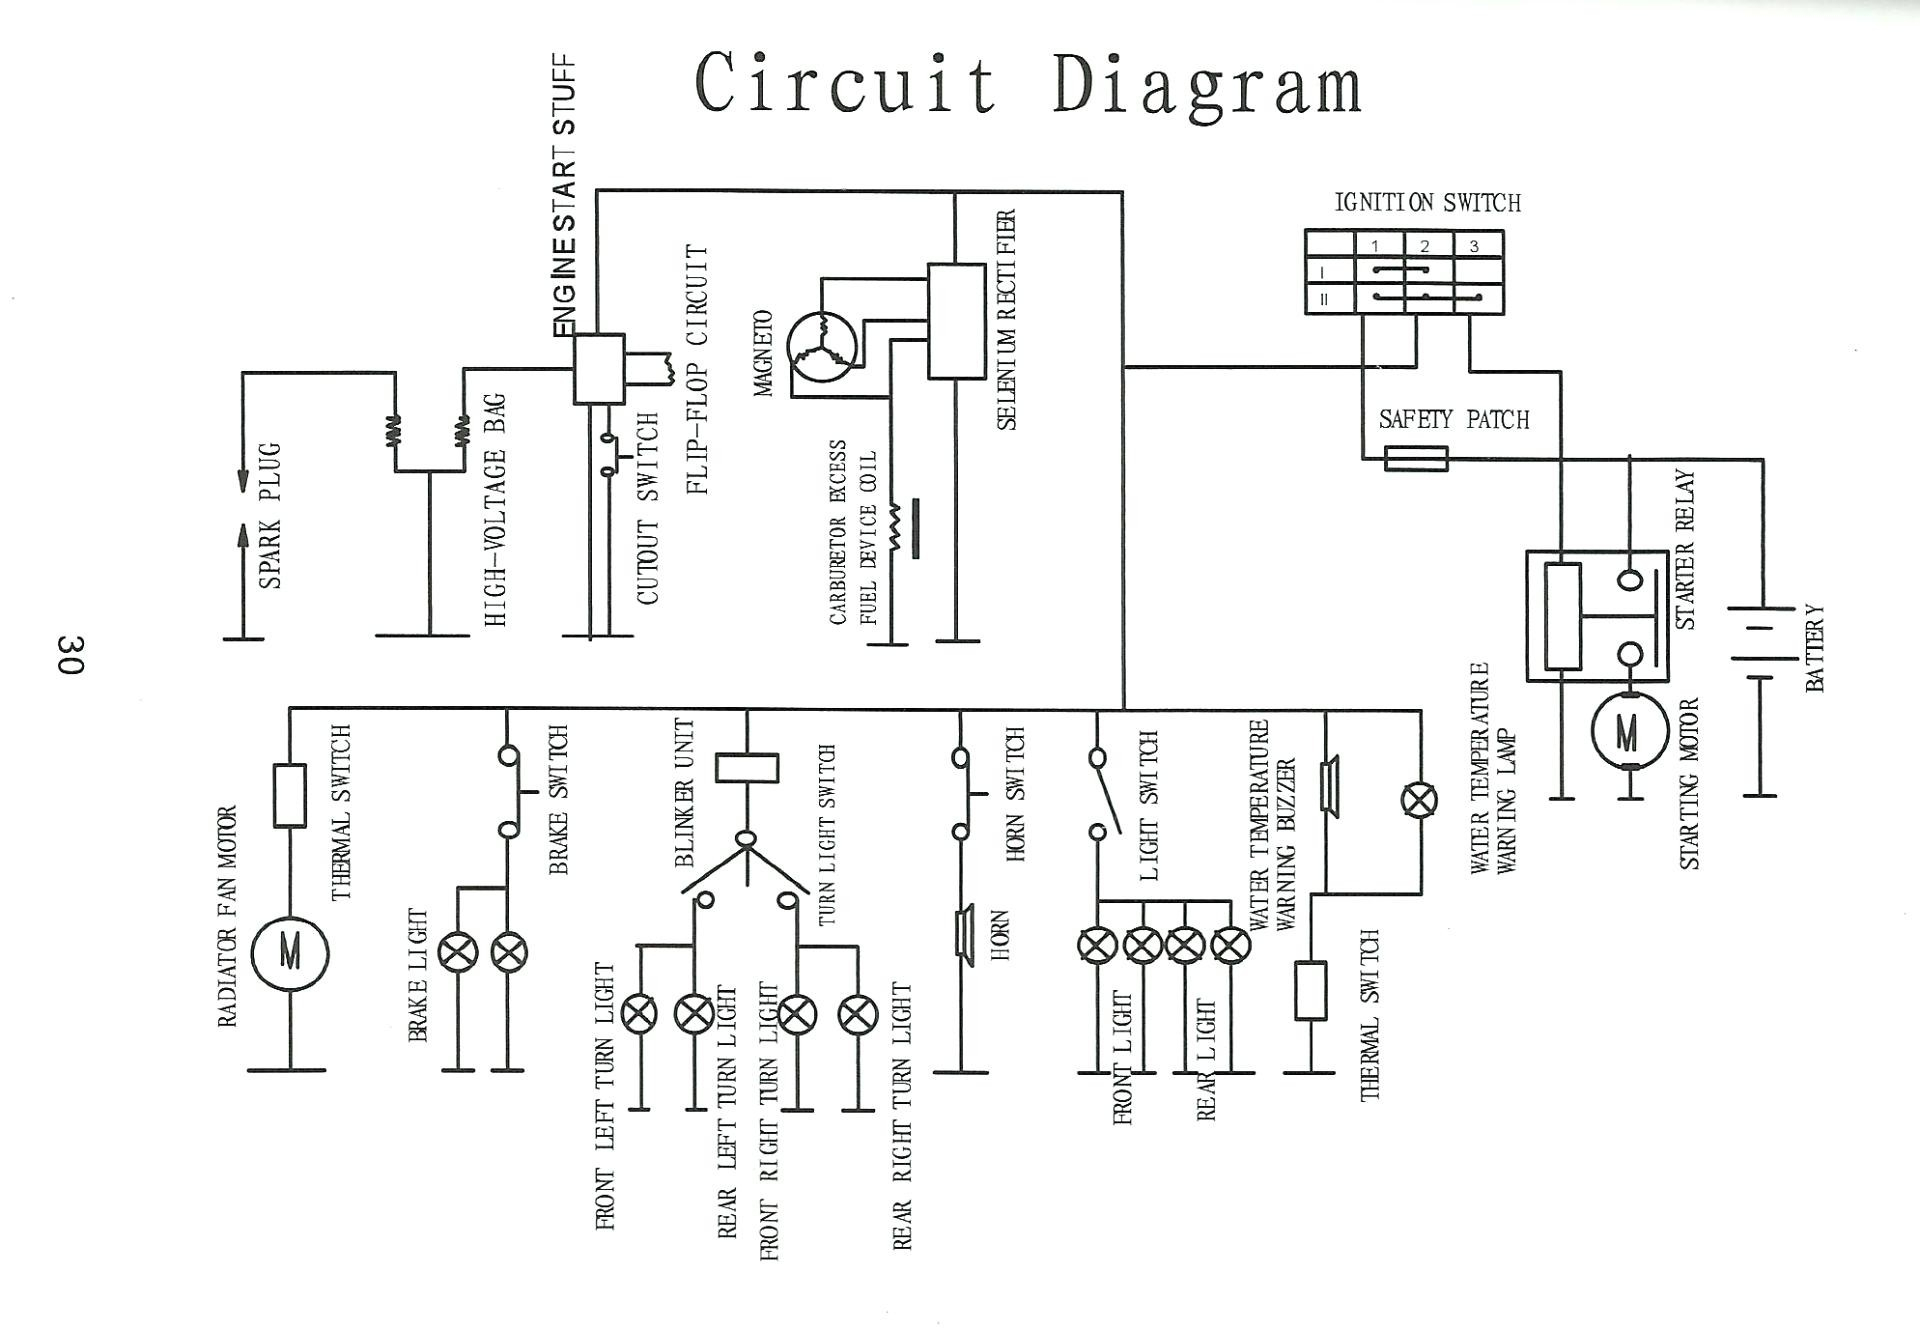 hight resolution of tao tao 150cc scooter wiring diagram wiring diagram 150cc scooter wiring diagram